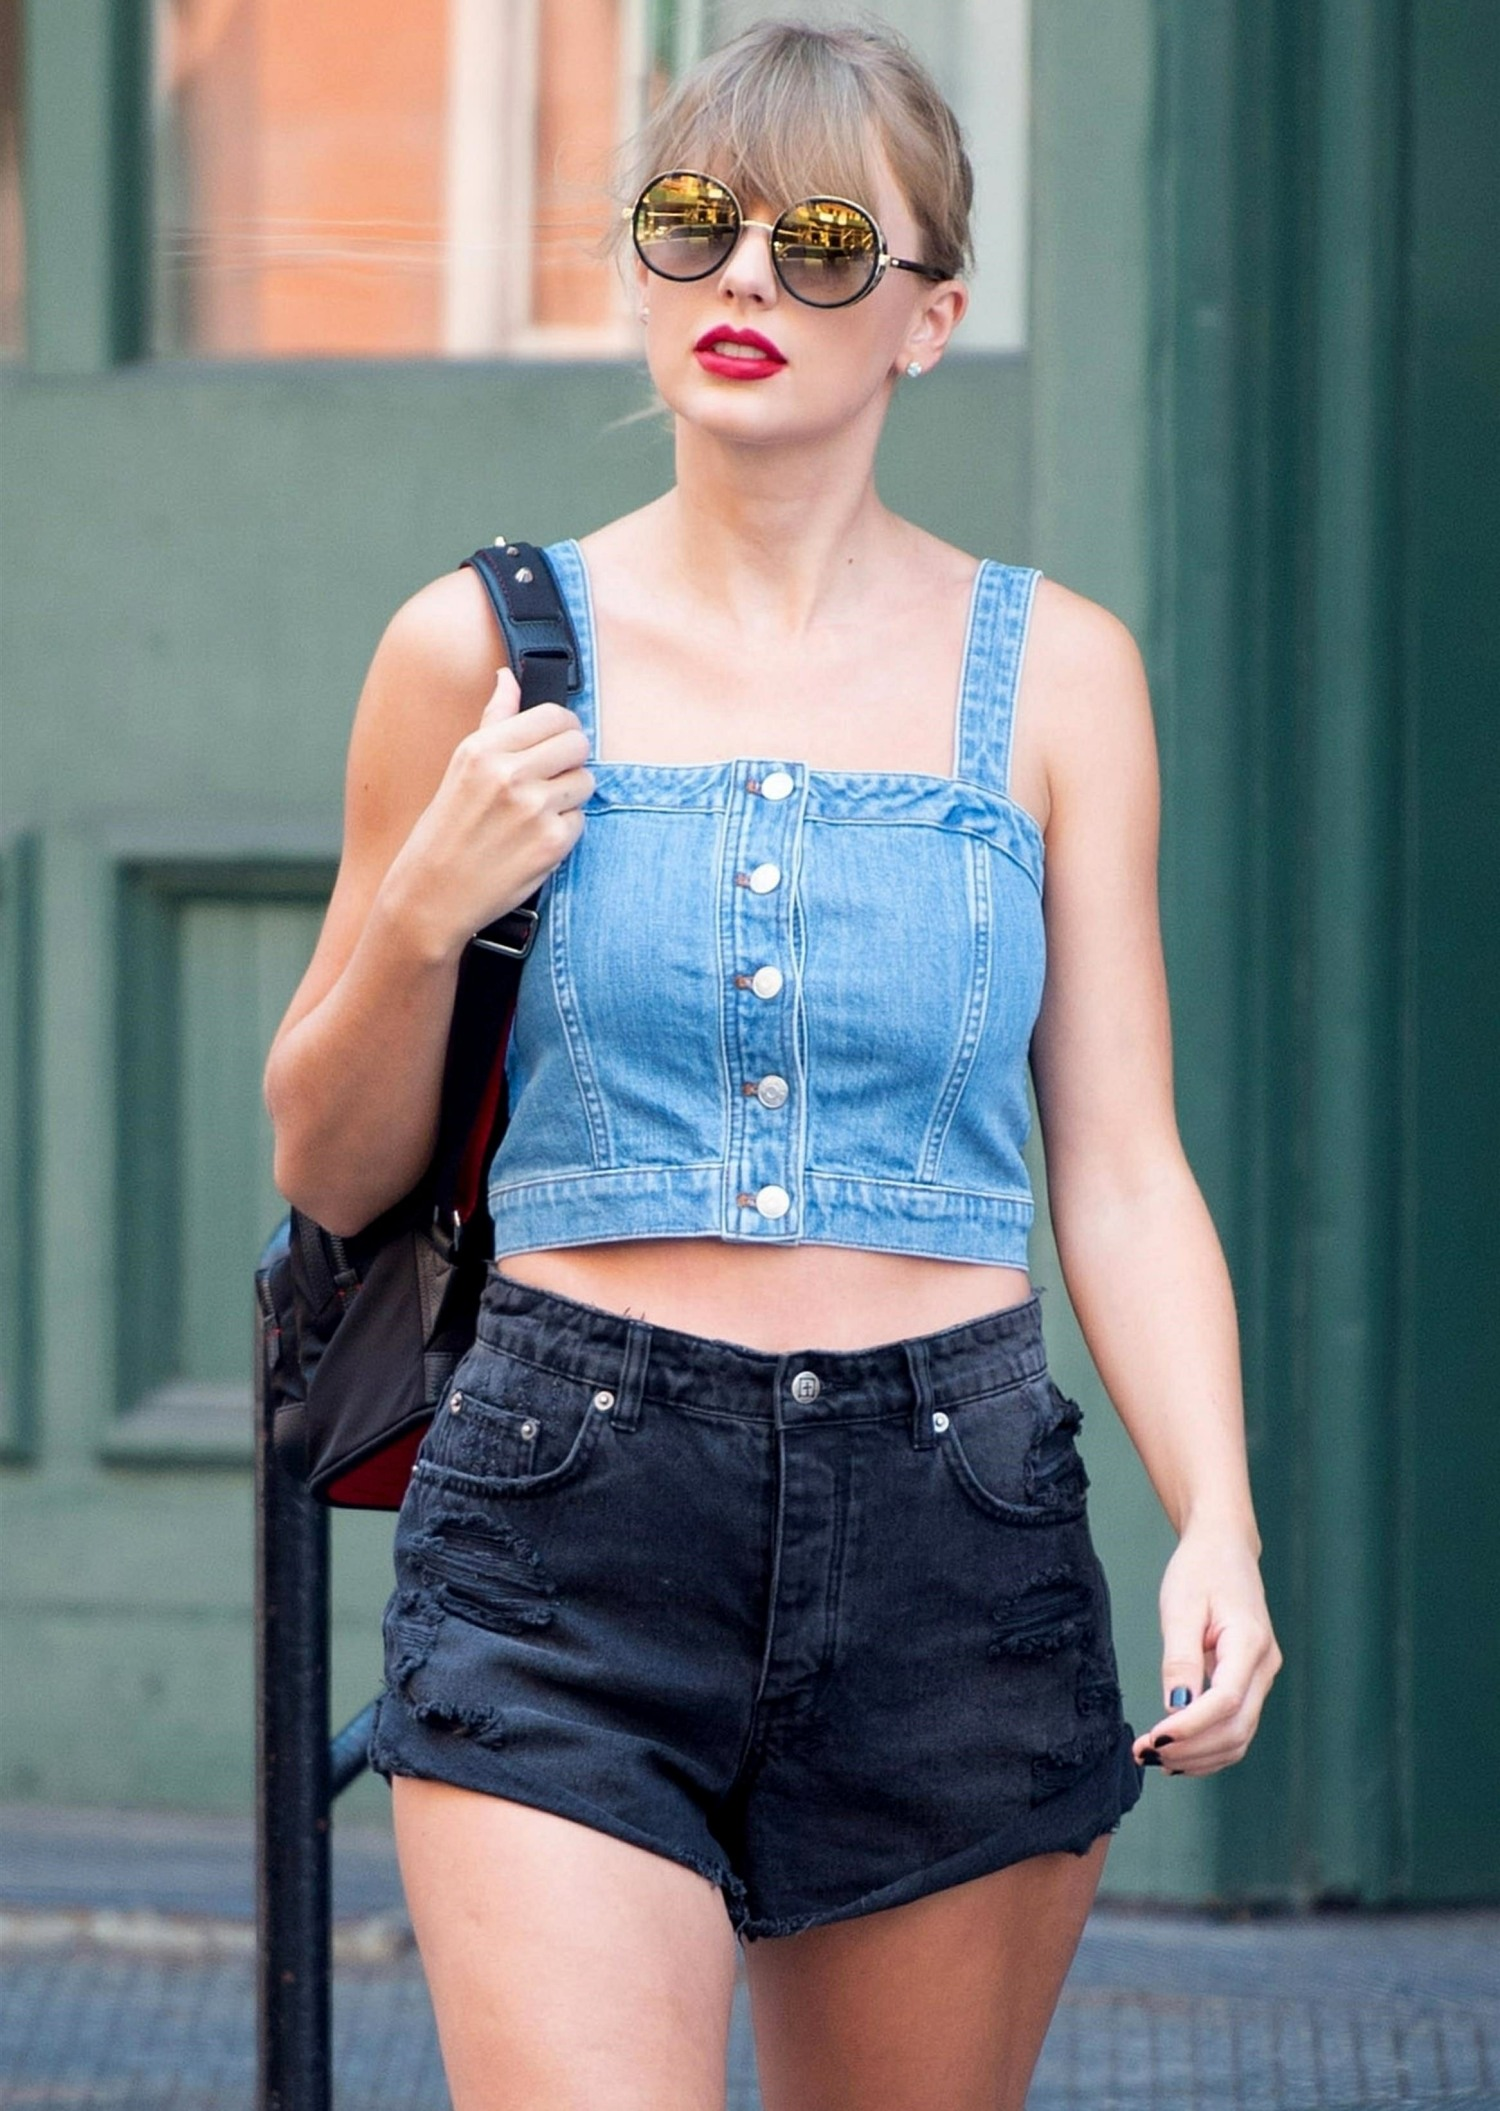 Taylor Swift steps out of her apartment showing off her legs in a pair of short shorts